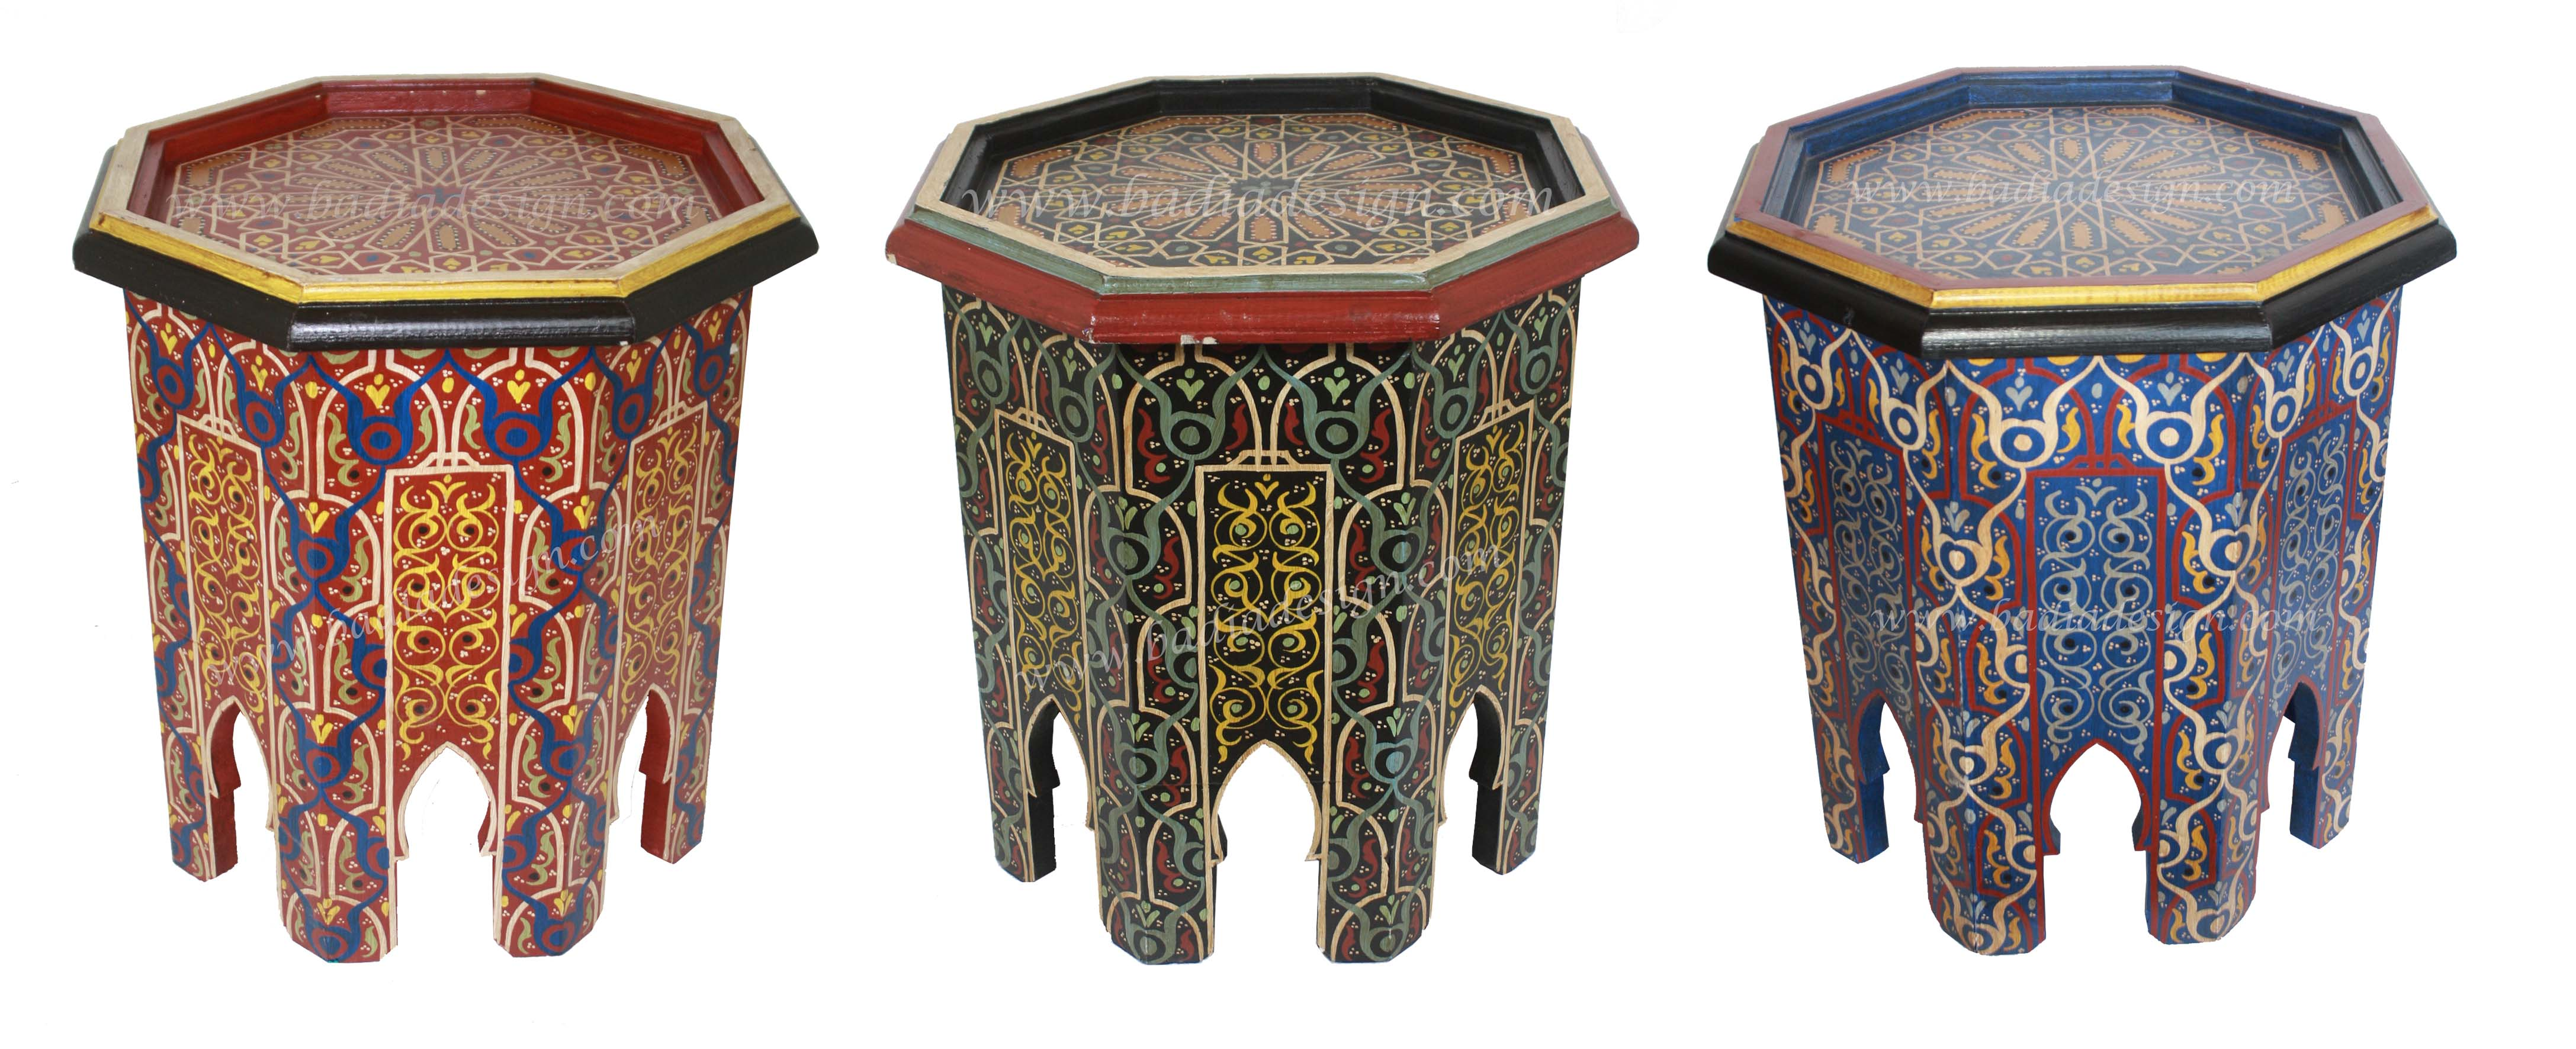 moroccan-hand-painted-accent-table-hp325-0.jpg